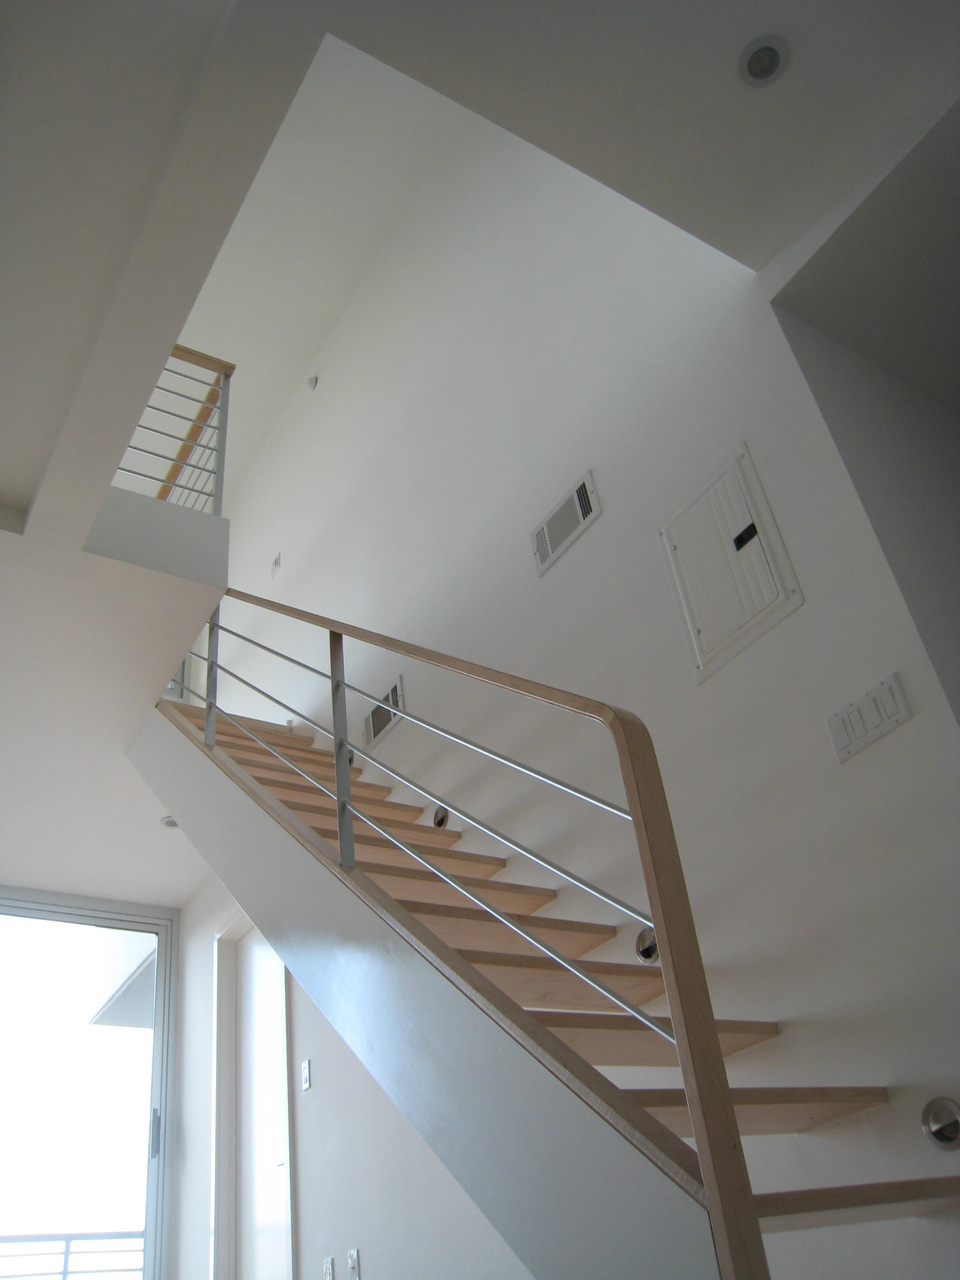 Stairs, railing and a second floor in an apt 18' ceilings. My last finished renovation in Brooklyn. August 2008